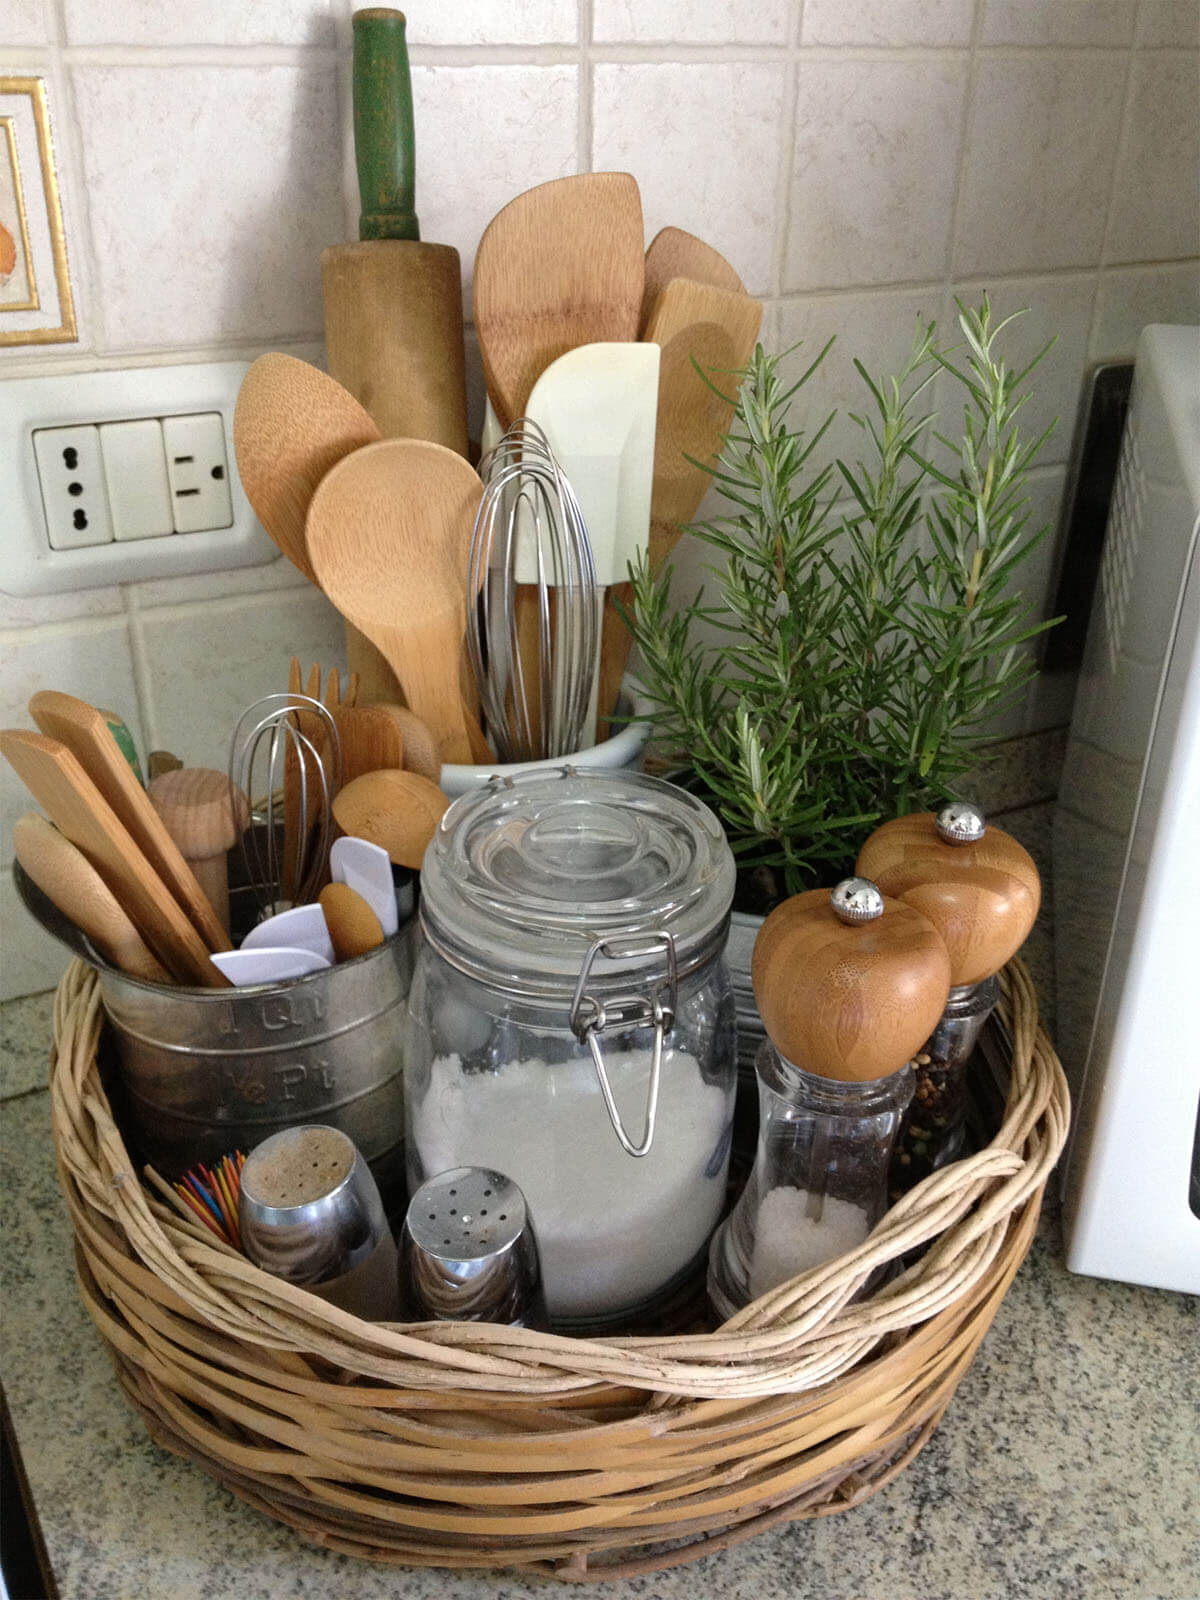 Basket Full of Herbs and Cooking Utensils